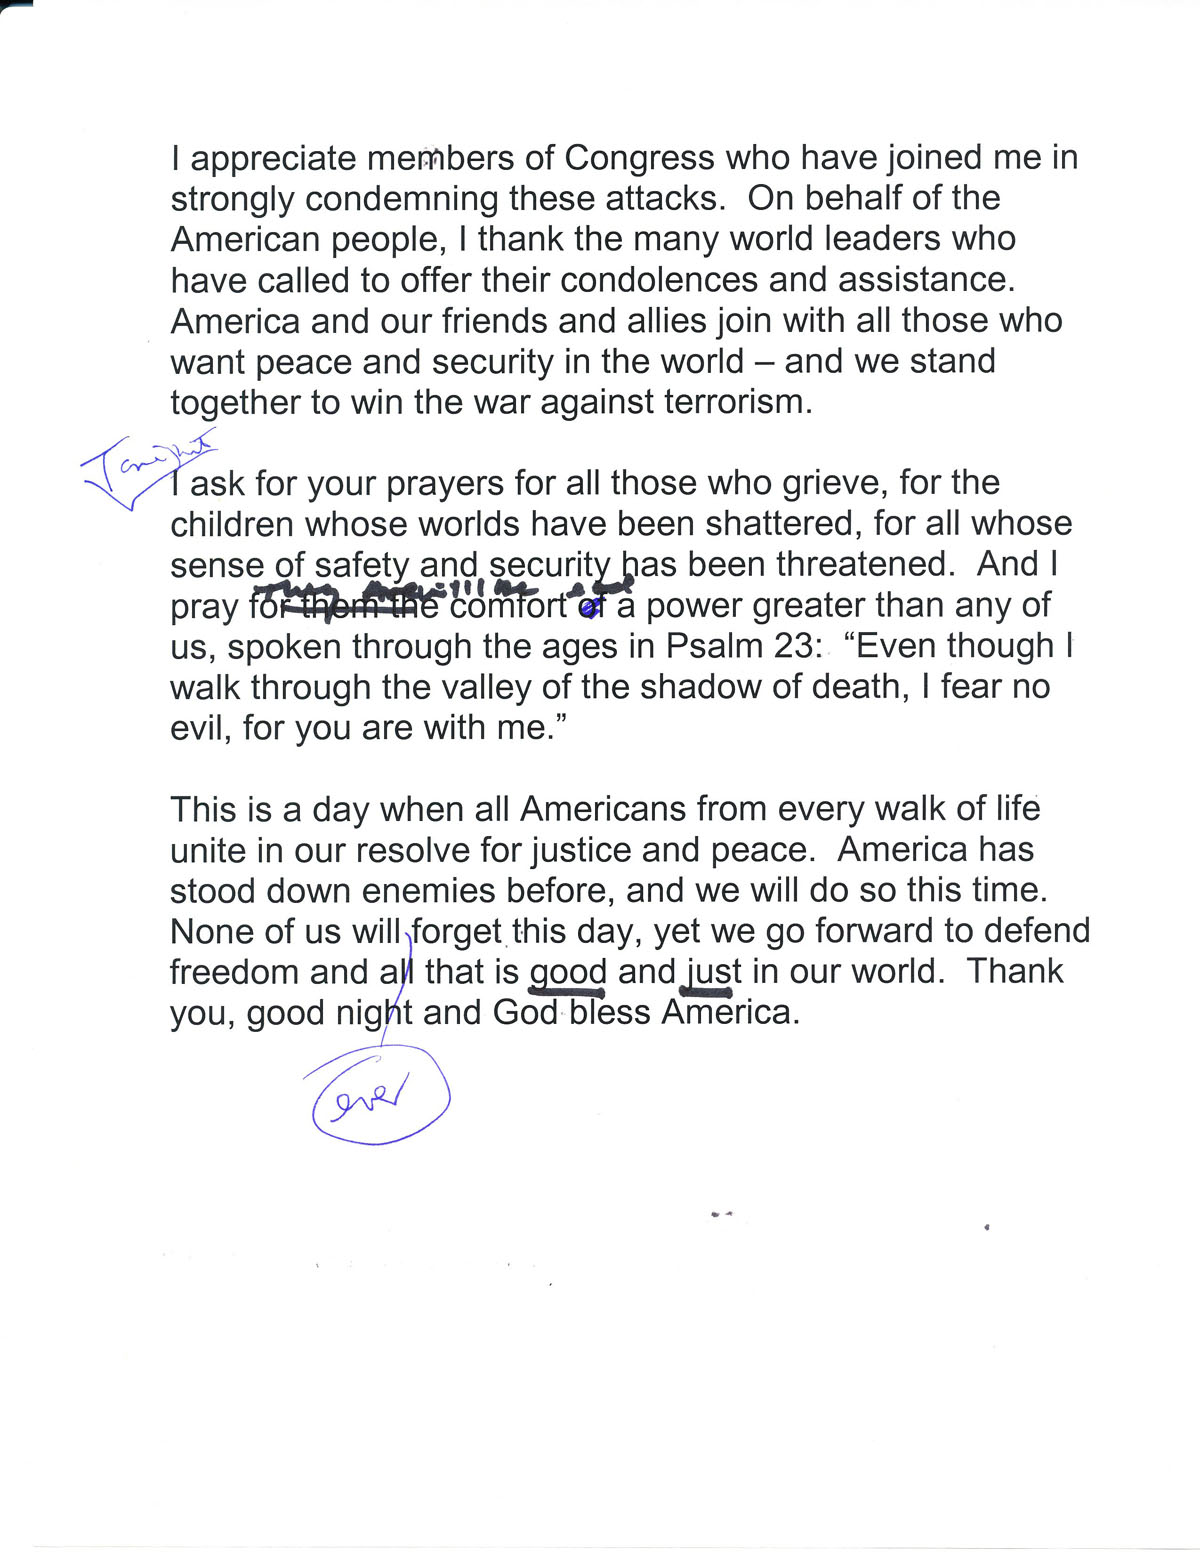 essay an address to the nation pieces of history custom  an address to the nation pieces of history page 3 of bush s 9 11 speech